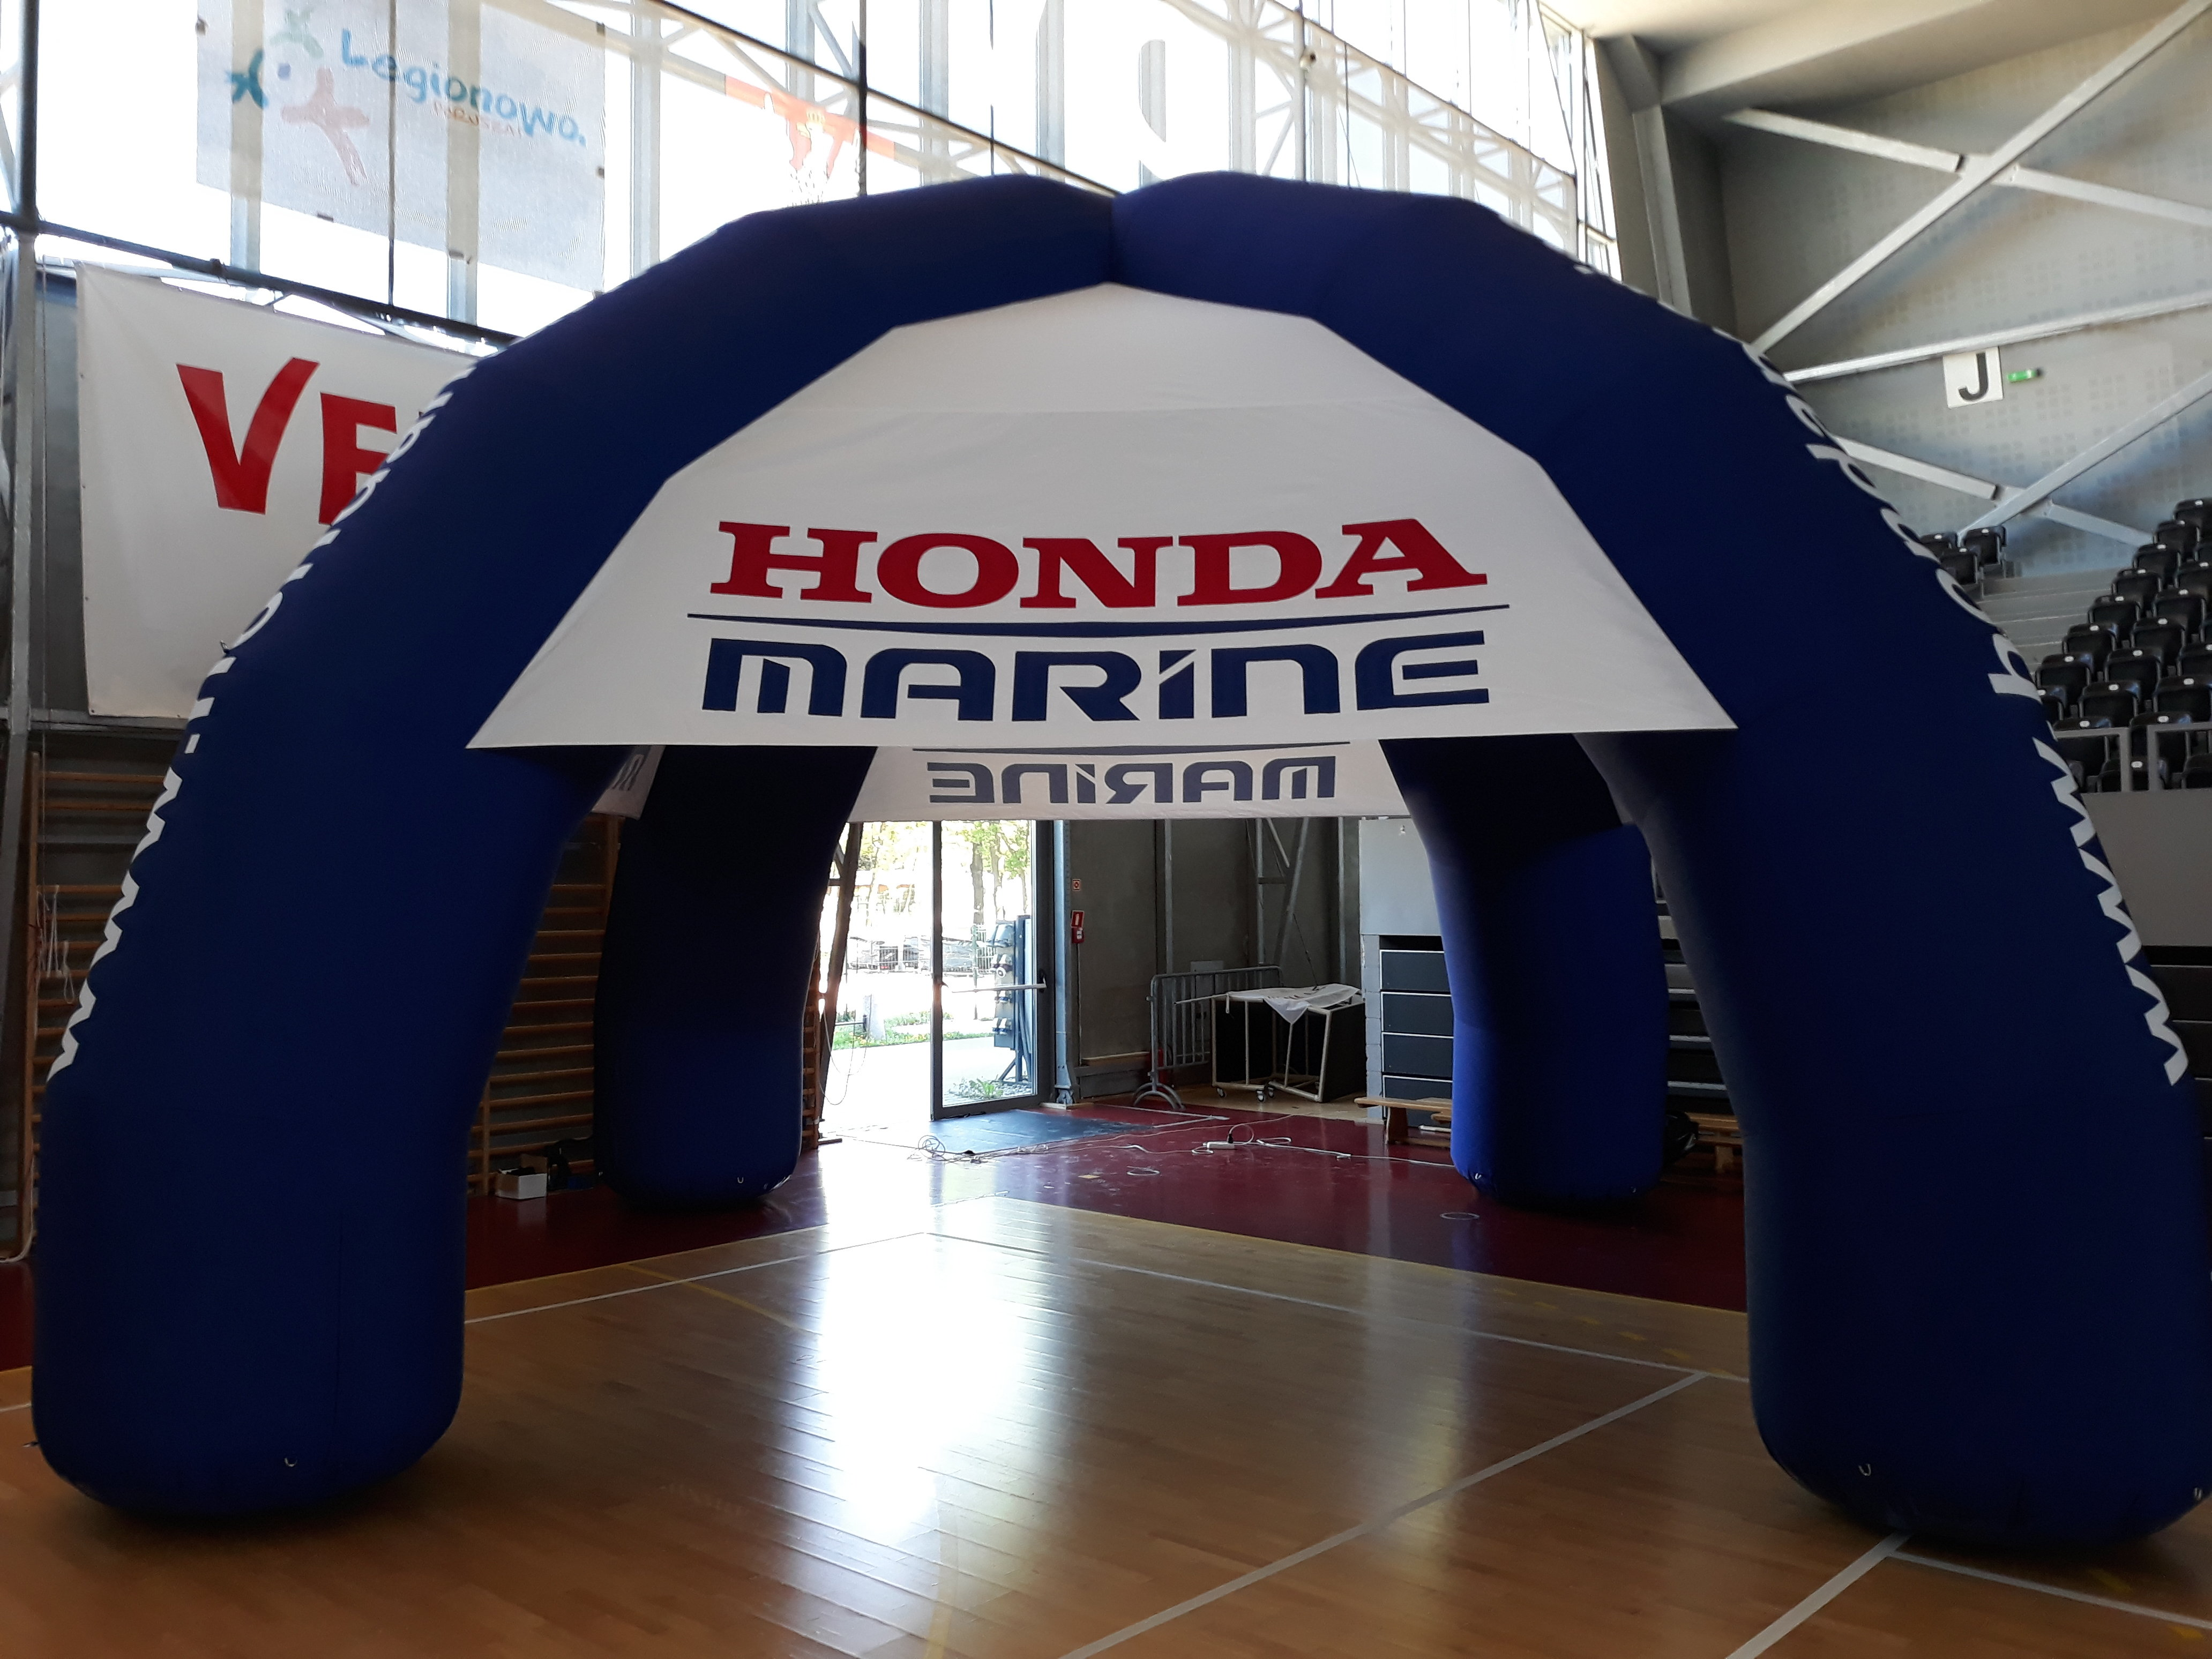 Spider Dome Promotional Tents - conopy Printing UK, Next Day Delivery - www.ontimeprint.co.uk